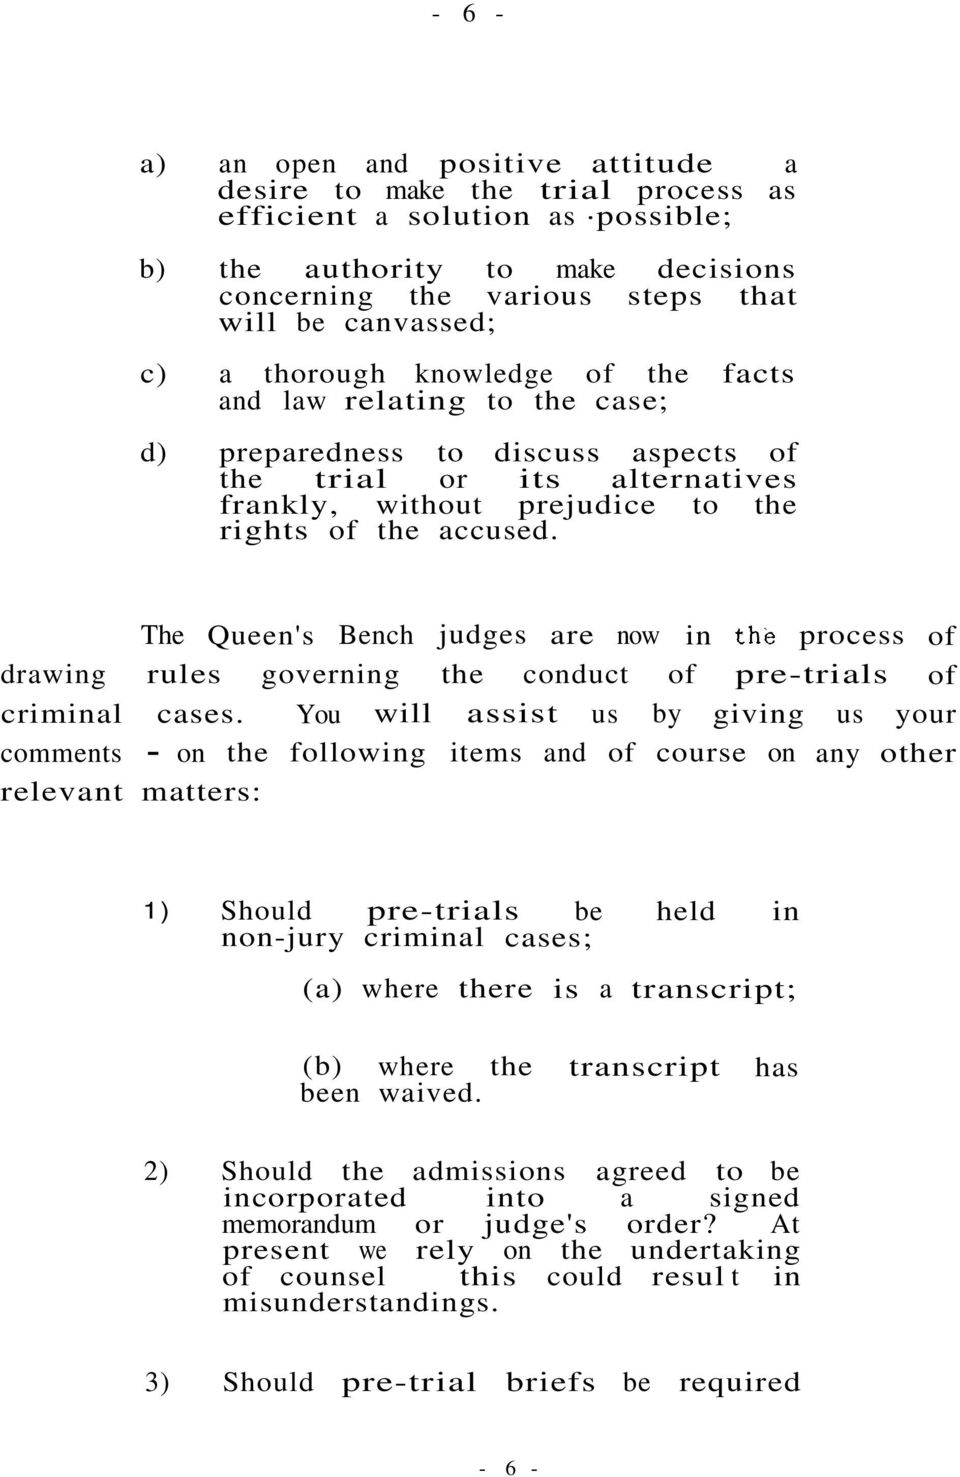 The Queen's Bench judges are now in the process of drawing rules governing the conduct of pre-trials of criminal cases.